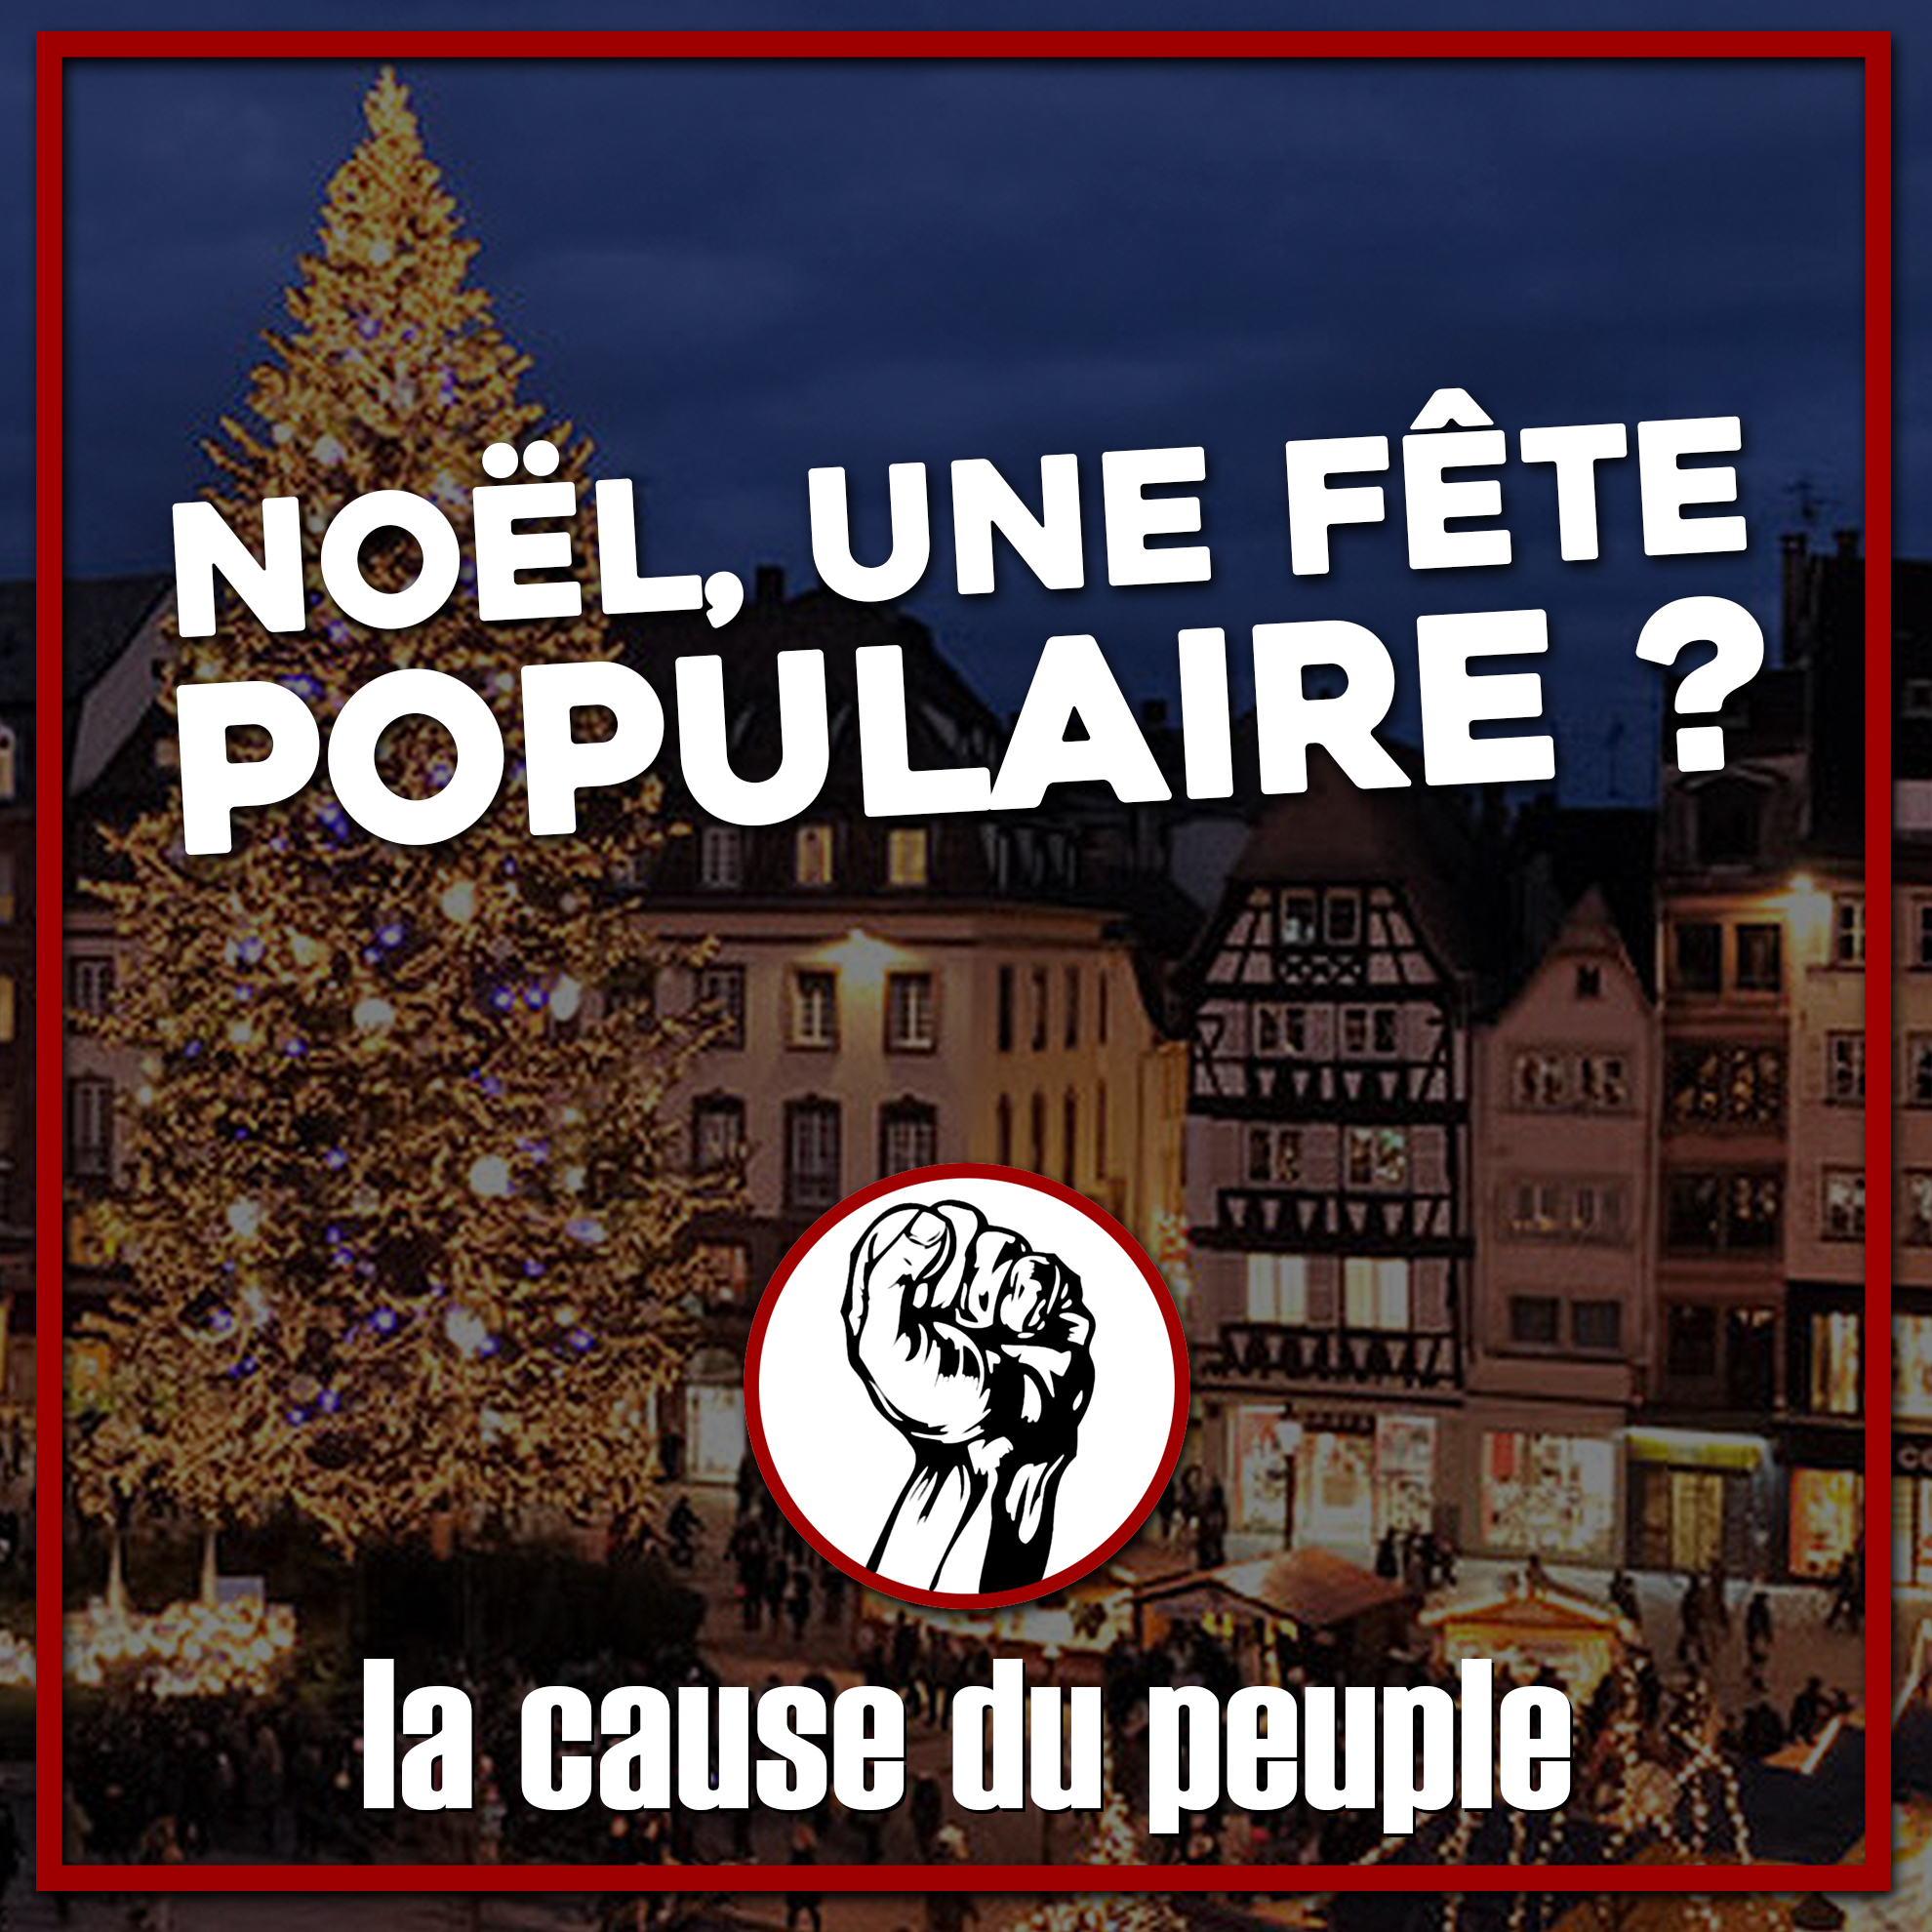 Camarade, pourquoi refuses-tu Noël ?